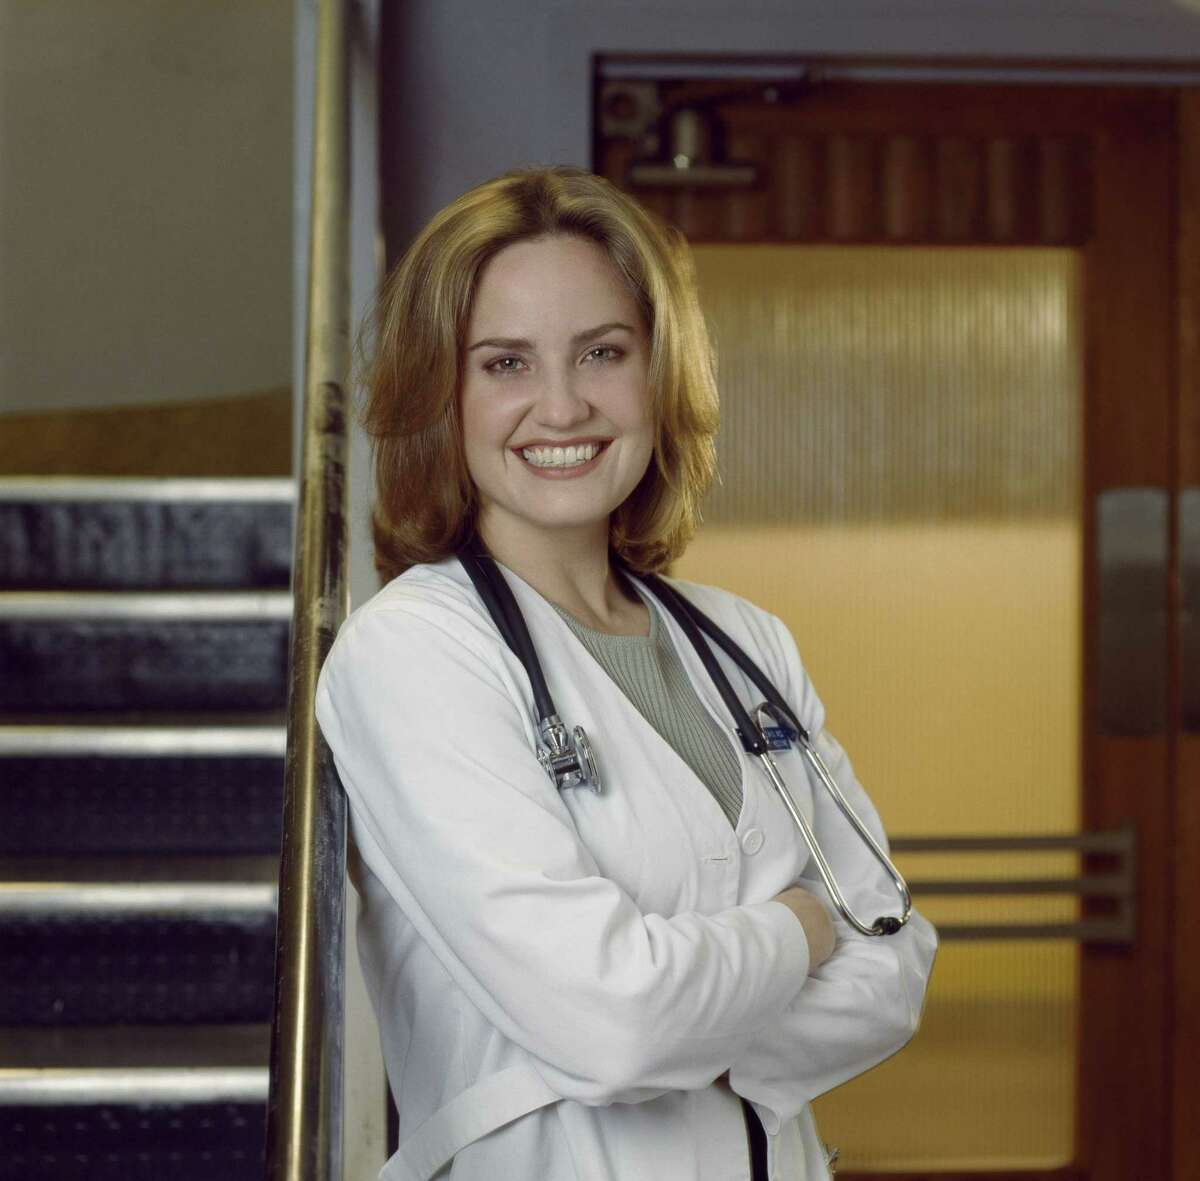 Sherry Stringfield played Susan Lewis in